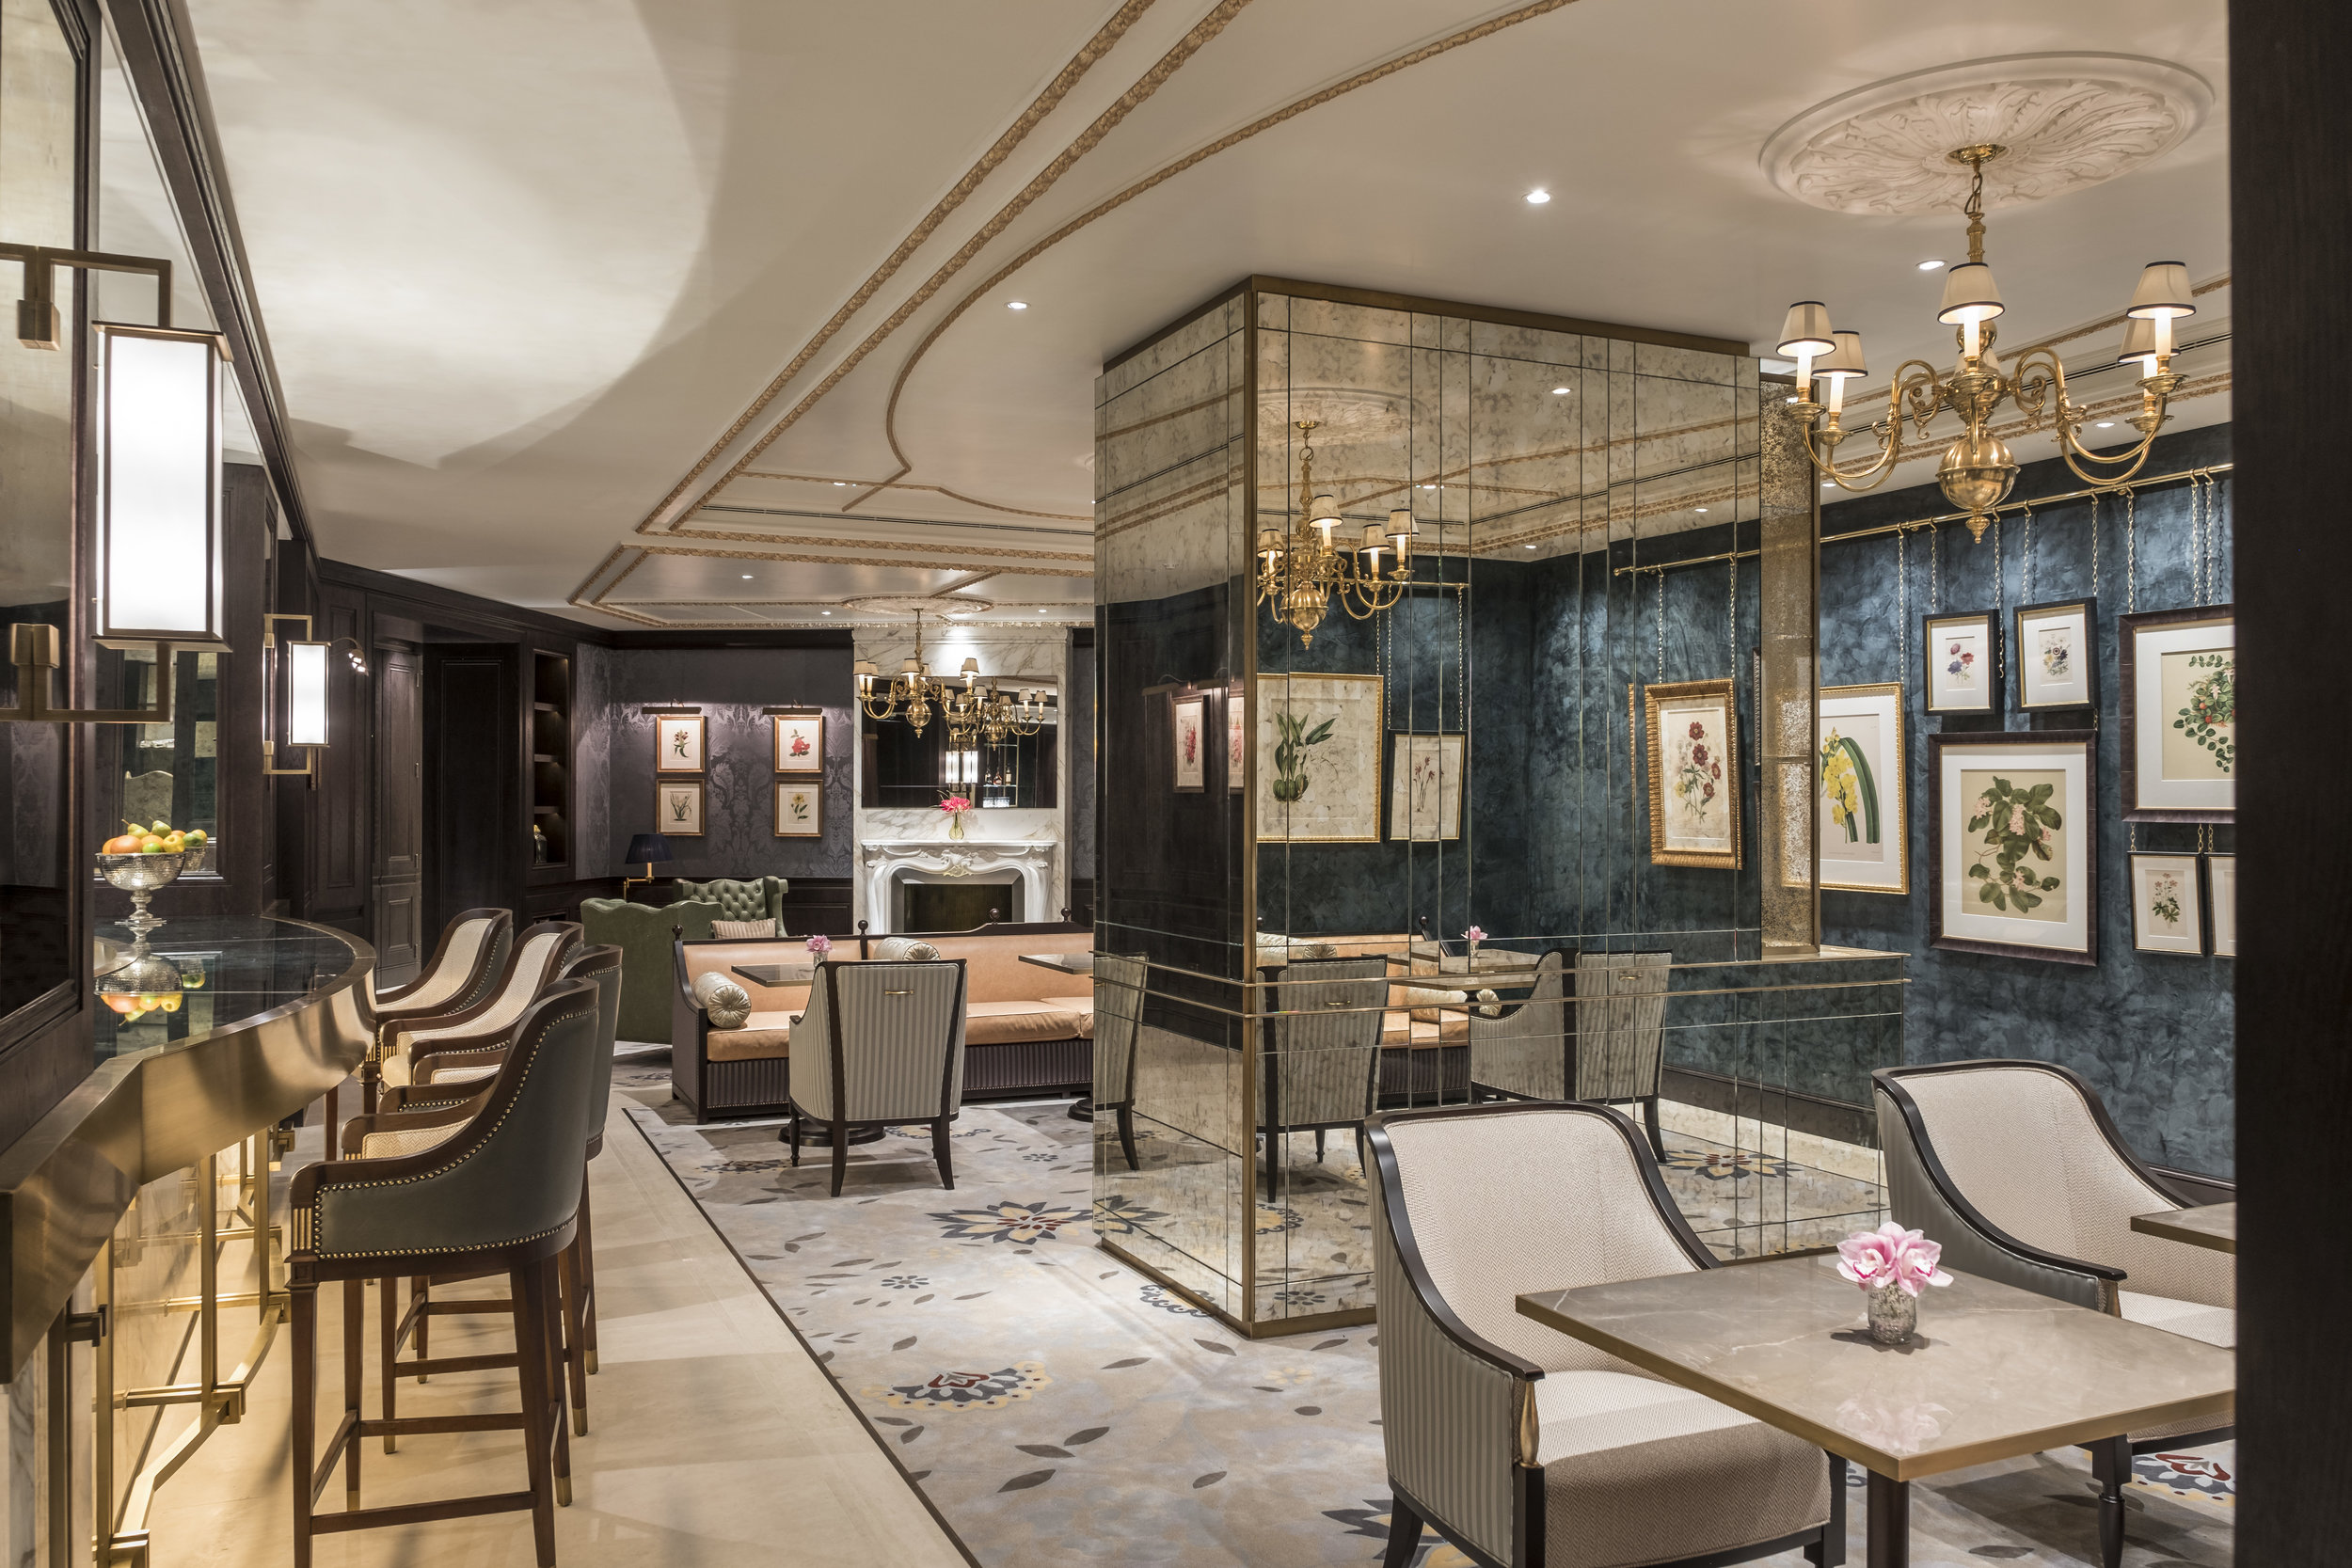 Lanesborough-Club-Spa-Room-Restaurant and Bar.jpg